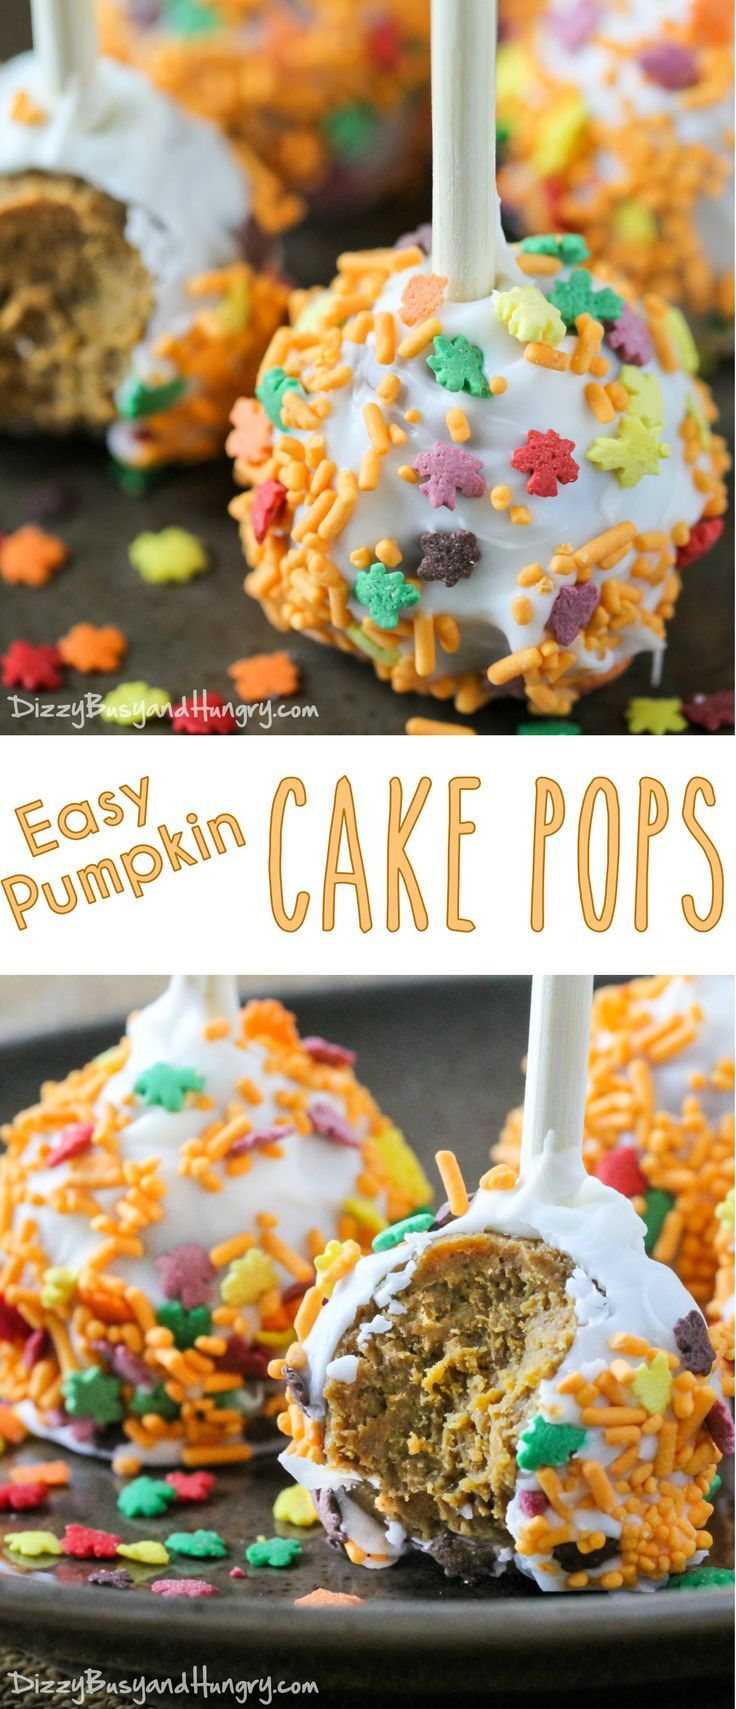 Easy Pumpkin Cake Pops   DizzyBusyandHungry.com - These festive pumpkin spice cake pops are moist and delicious and so fun to eat!